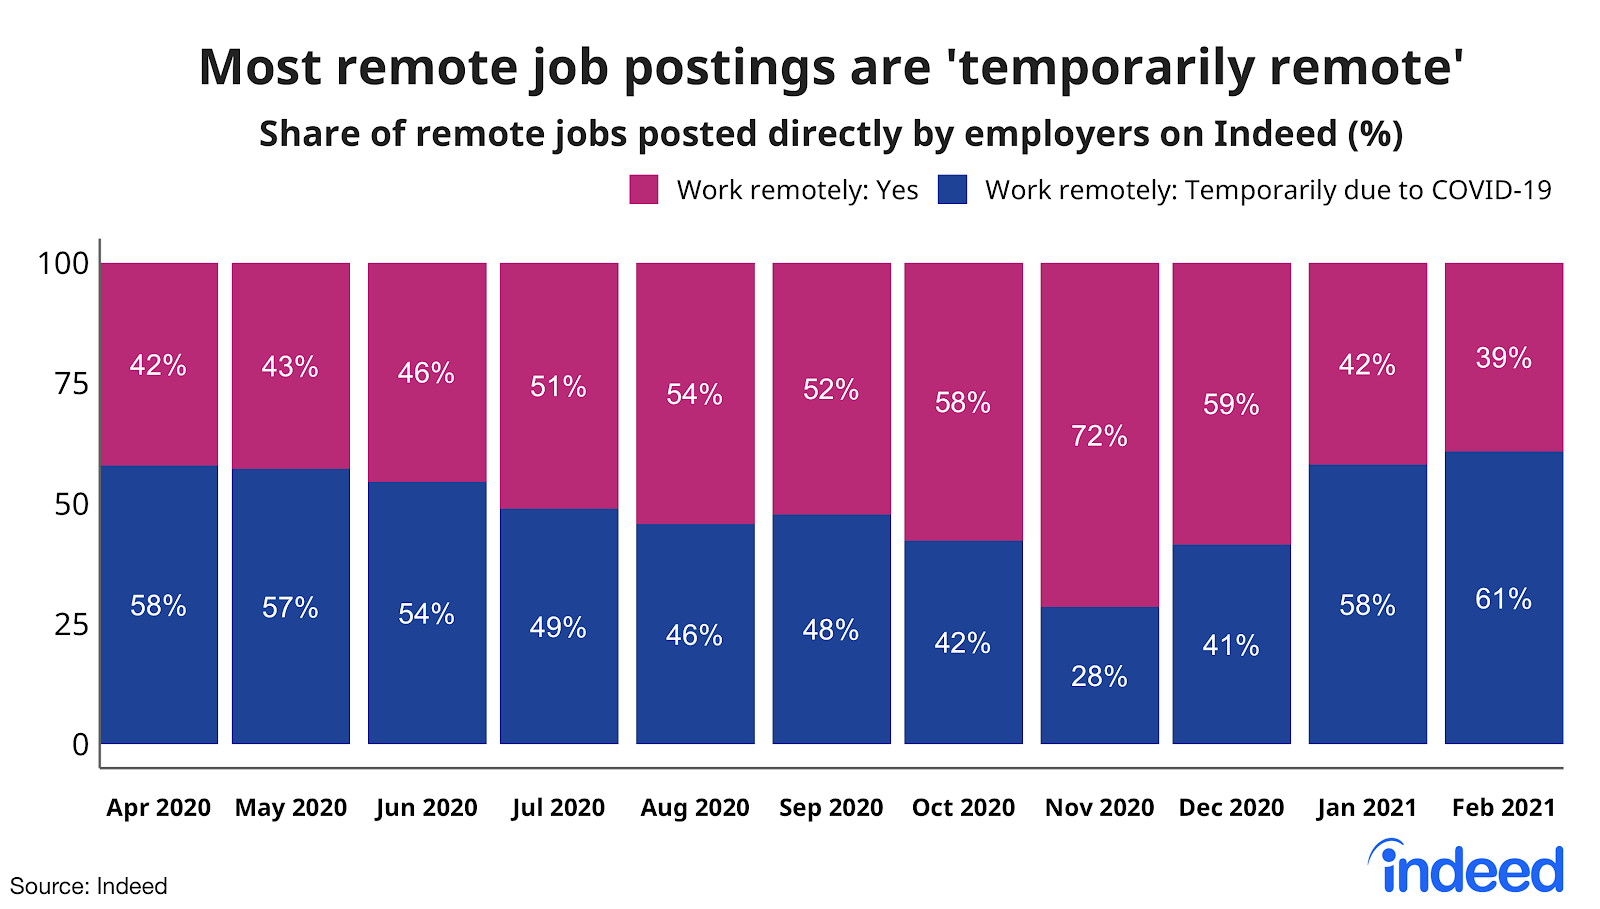 Bar graph showing most remote job postings are temporarily remote